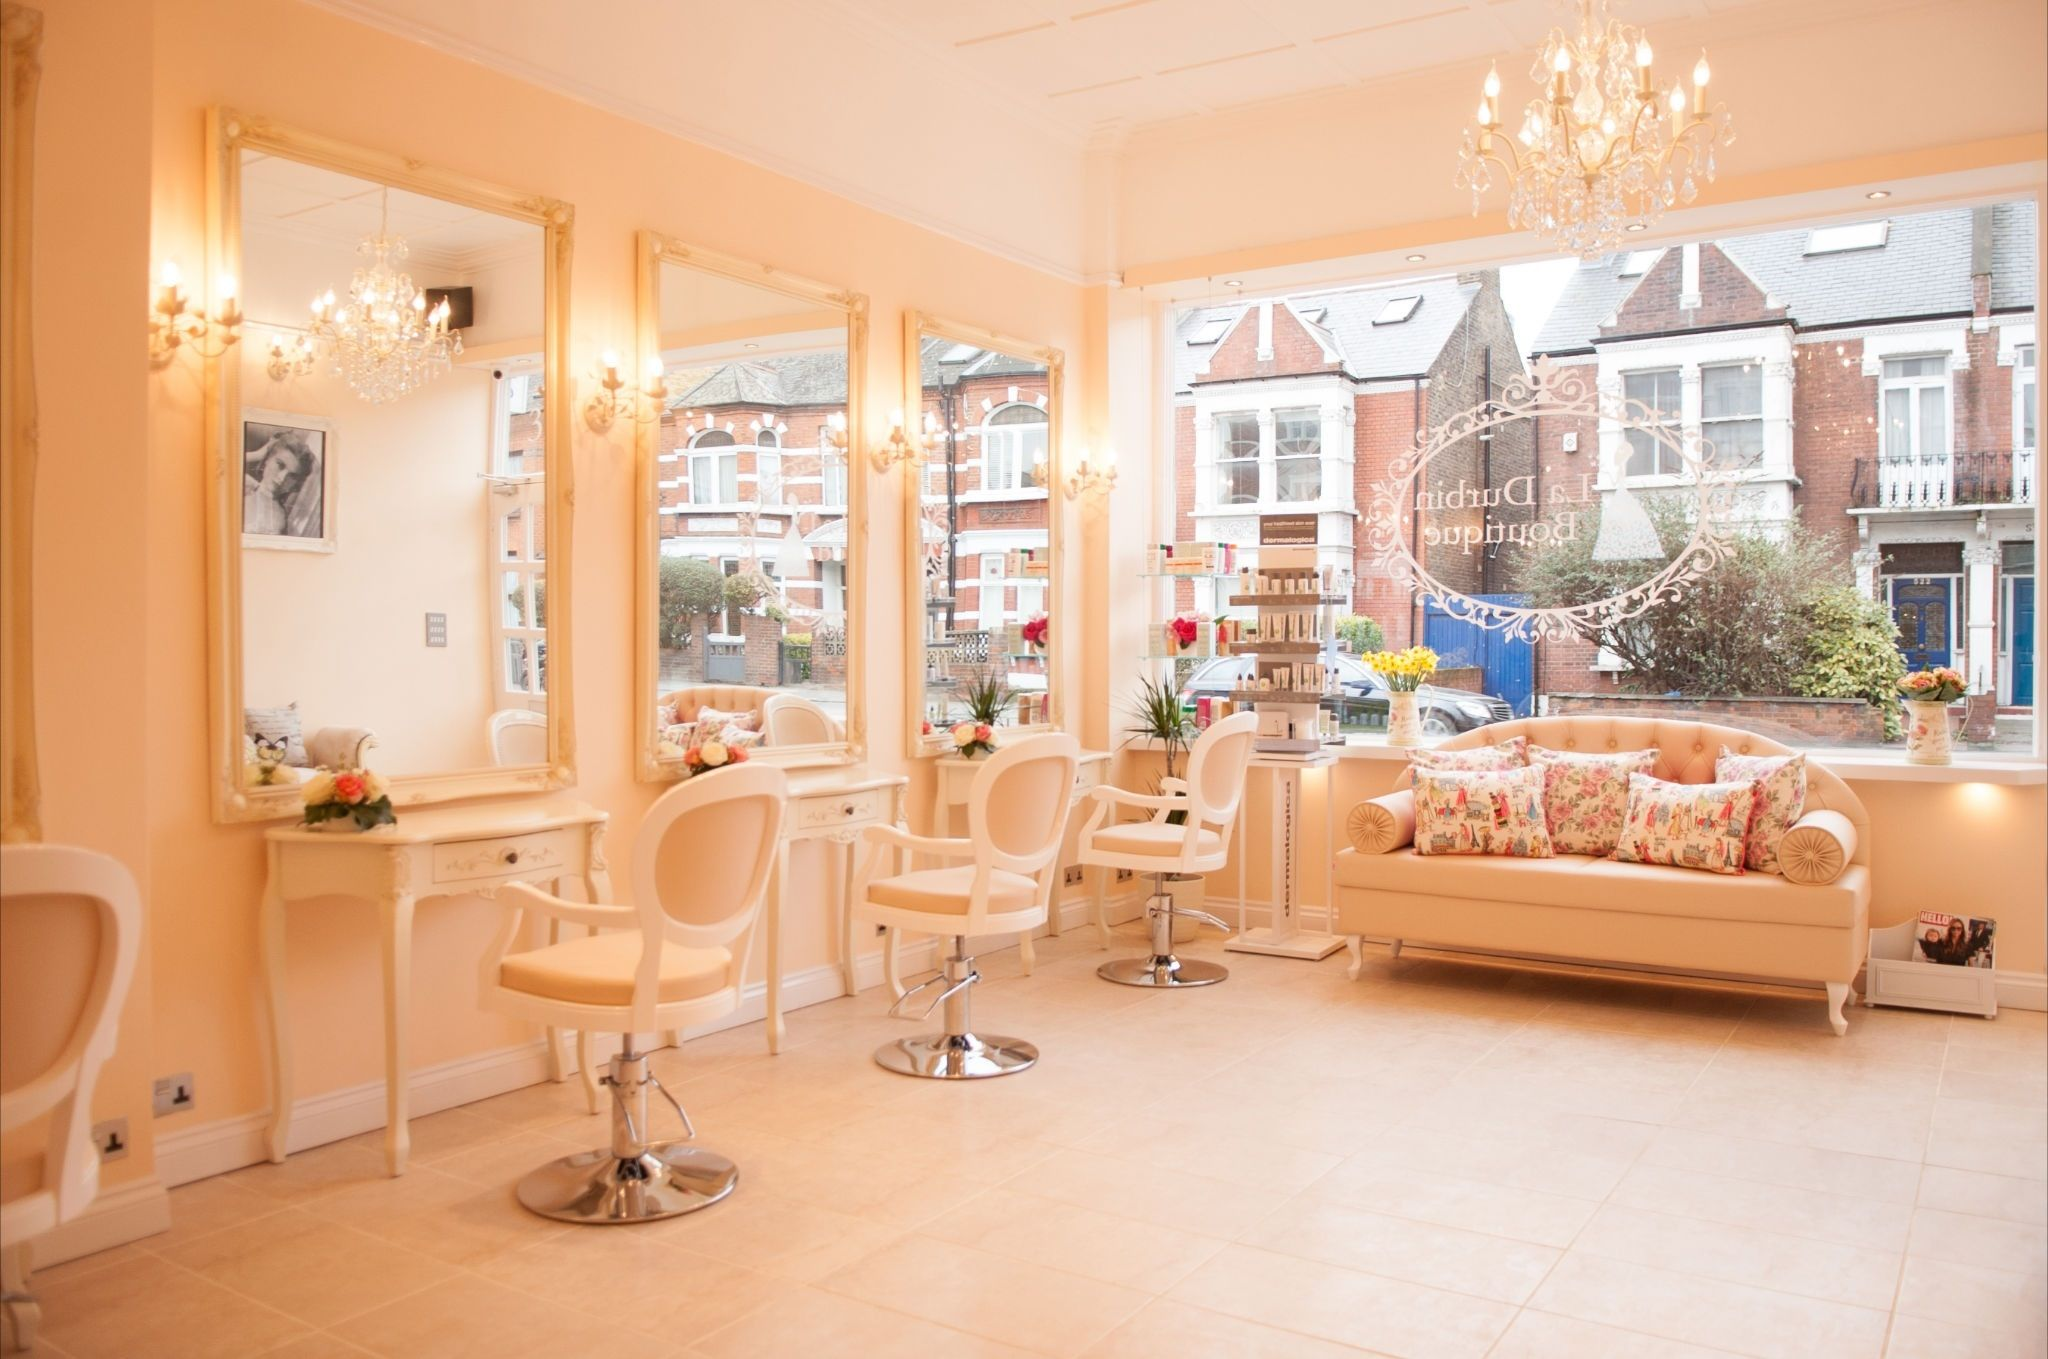 Hairdressing Salon La Durbin Boutique The Chic Fulham Salon Salon Hair Salon